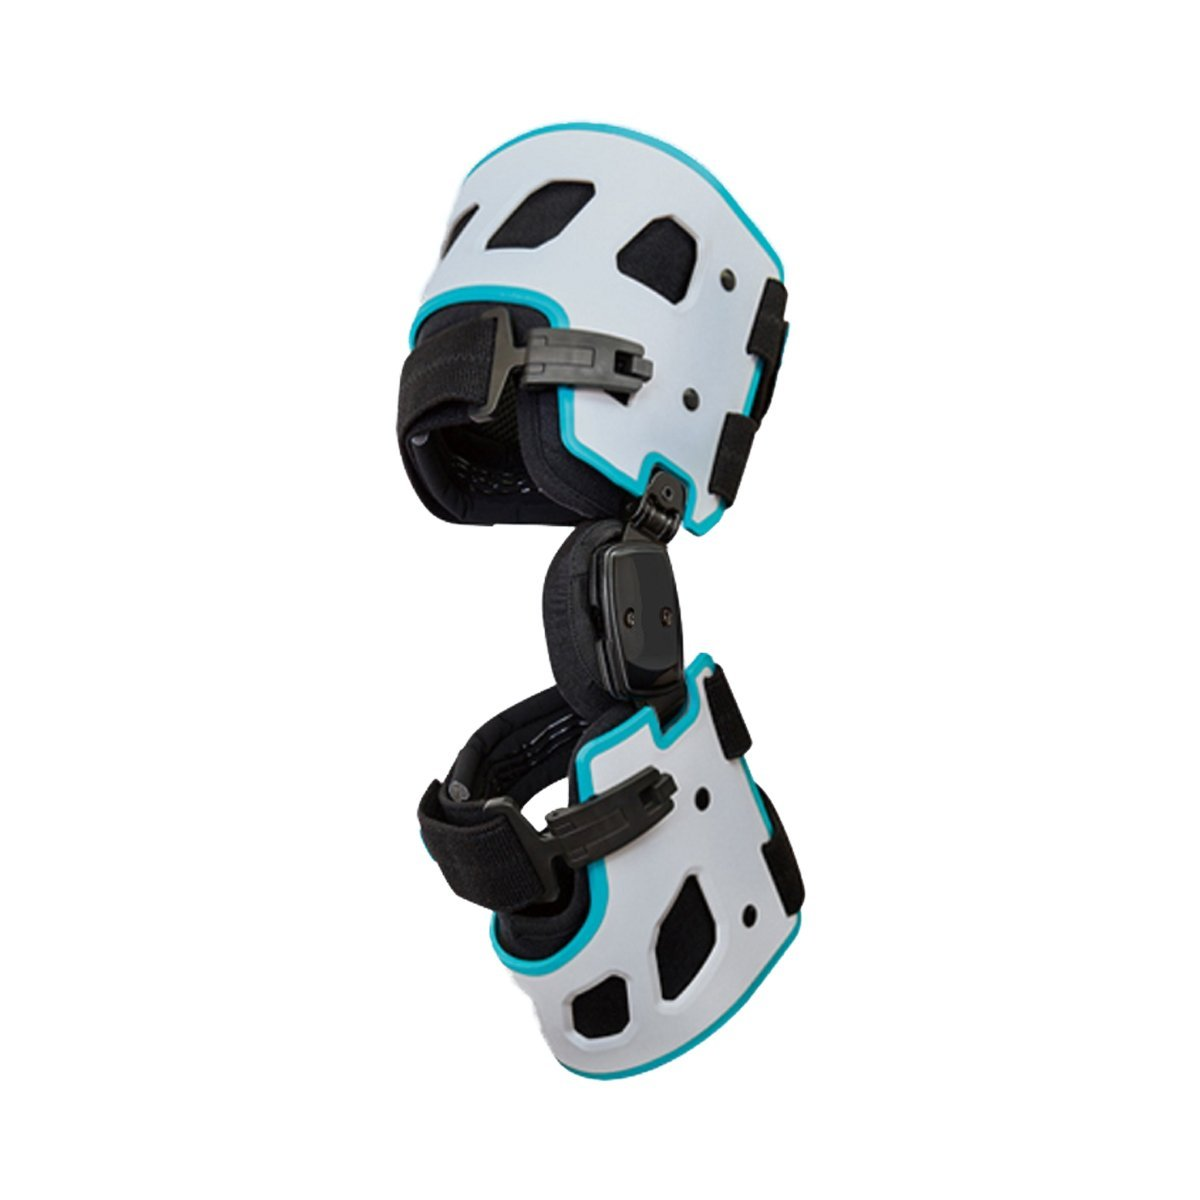 Orthomen OA Unloader Knee Brace - Medial/Inside Support for Arthritis Pain, Osteoarthritis, Cartilage Defect Repair, Avascular Necrosis, Knee Joint Pain and Degeneration (Right) by Orthomen